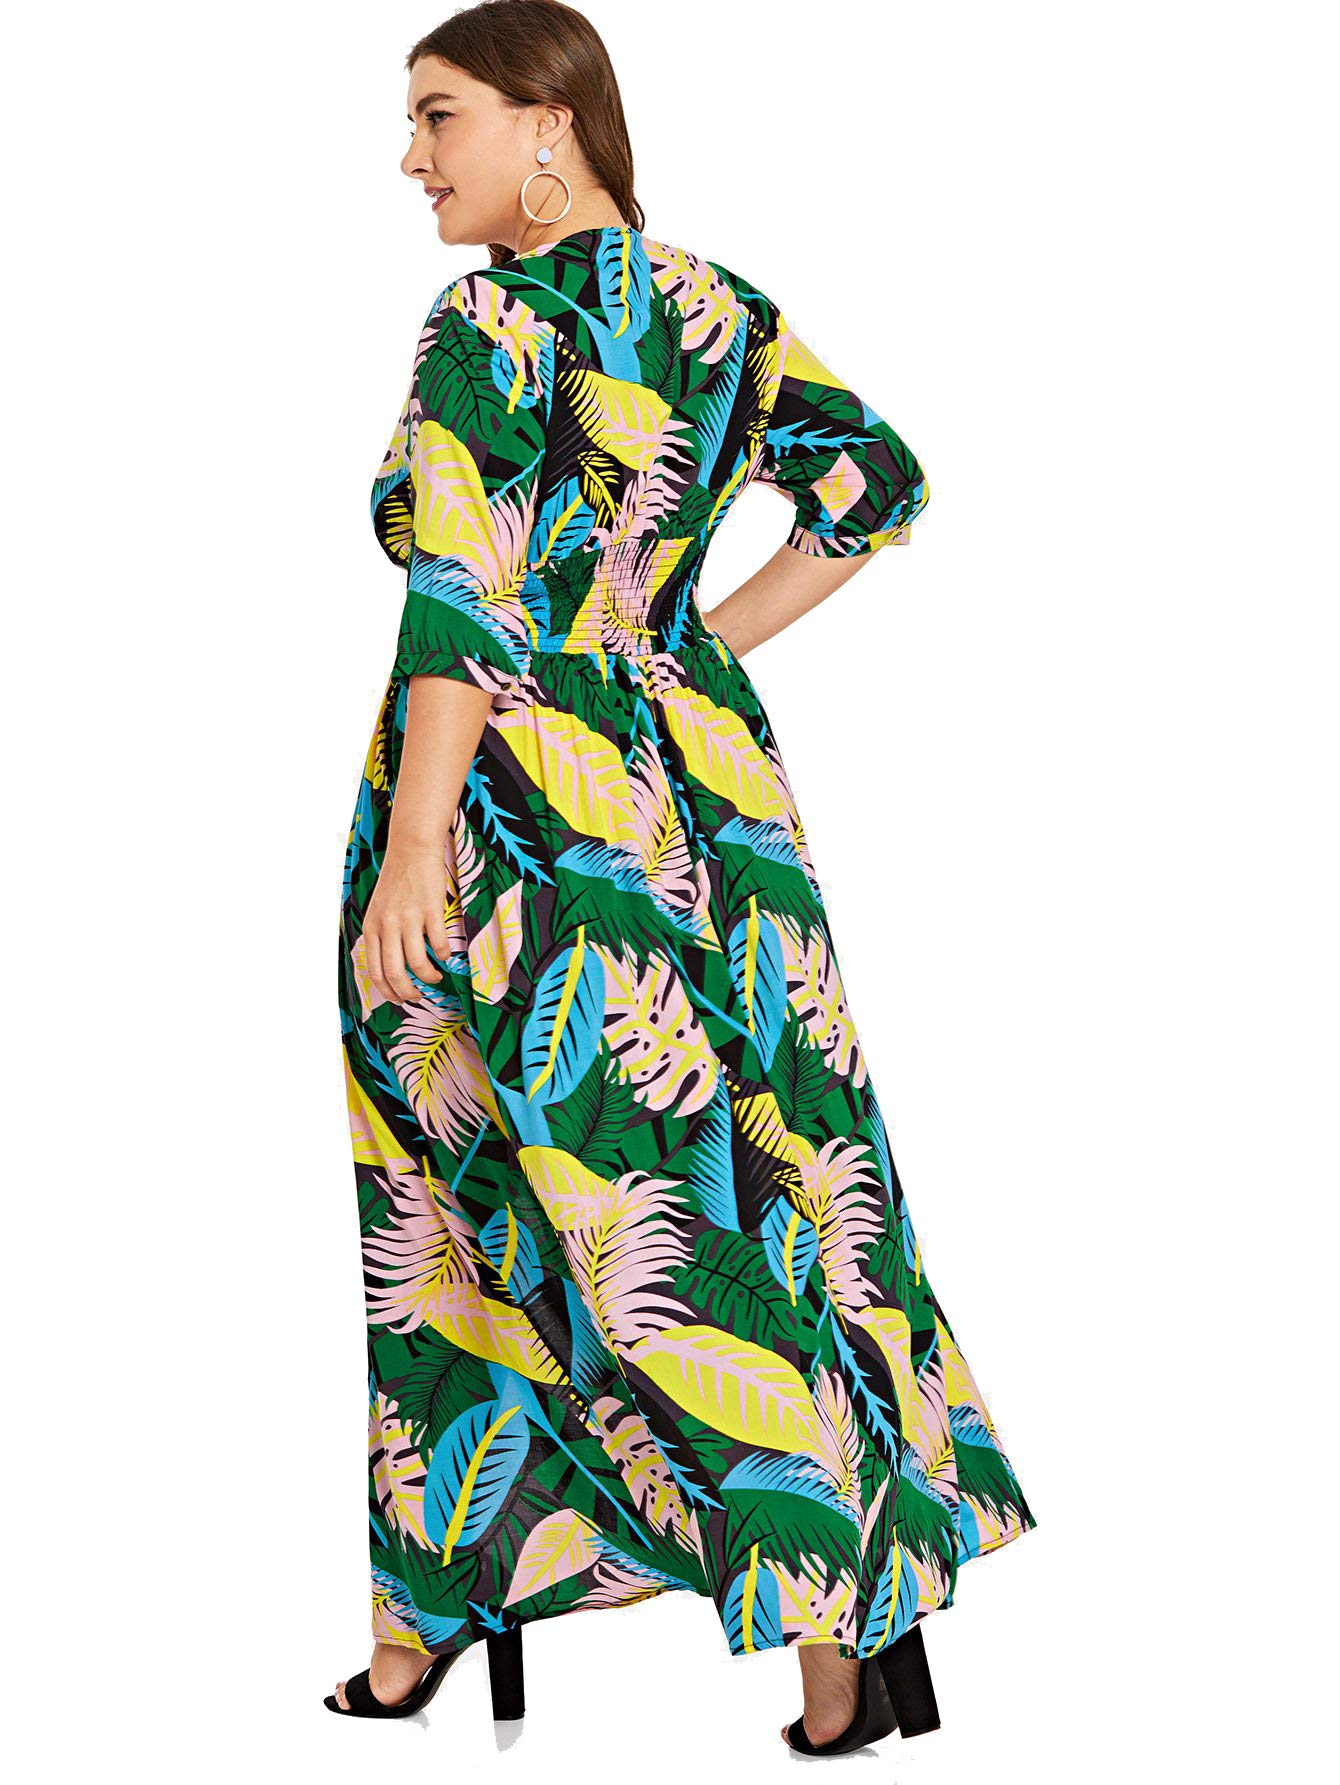 Milumia-Womens-Button-Up-Split-Floral-Print-Flowy-Party-Maxi-Dress